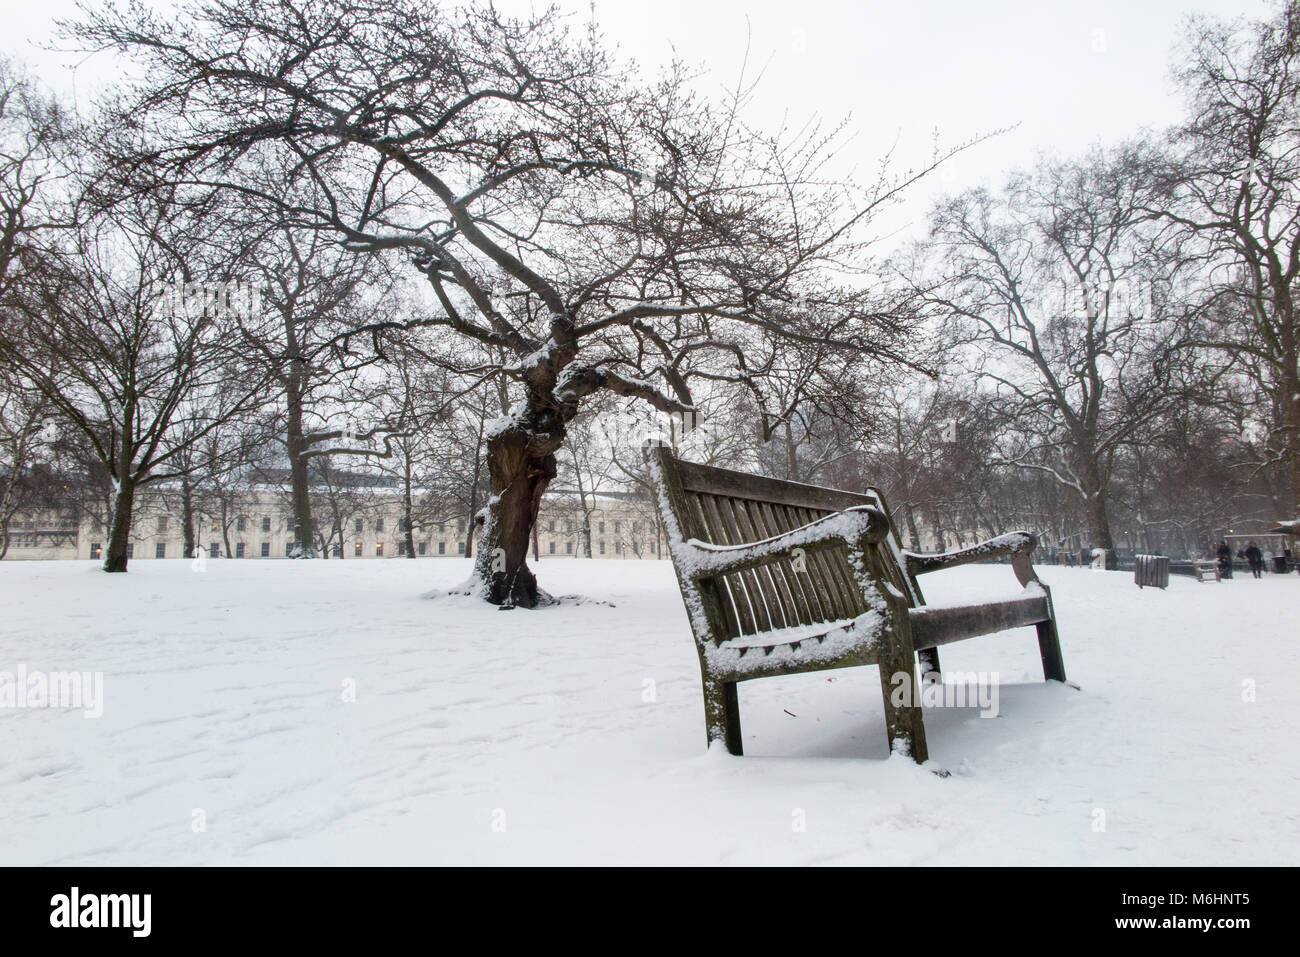 A snow covered bench and cherry tree in St James's Park, London - Stock Image